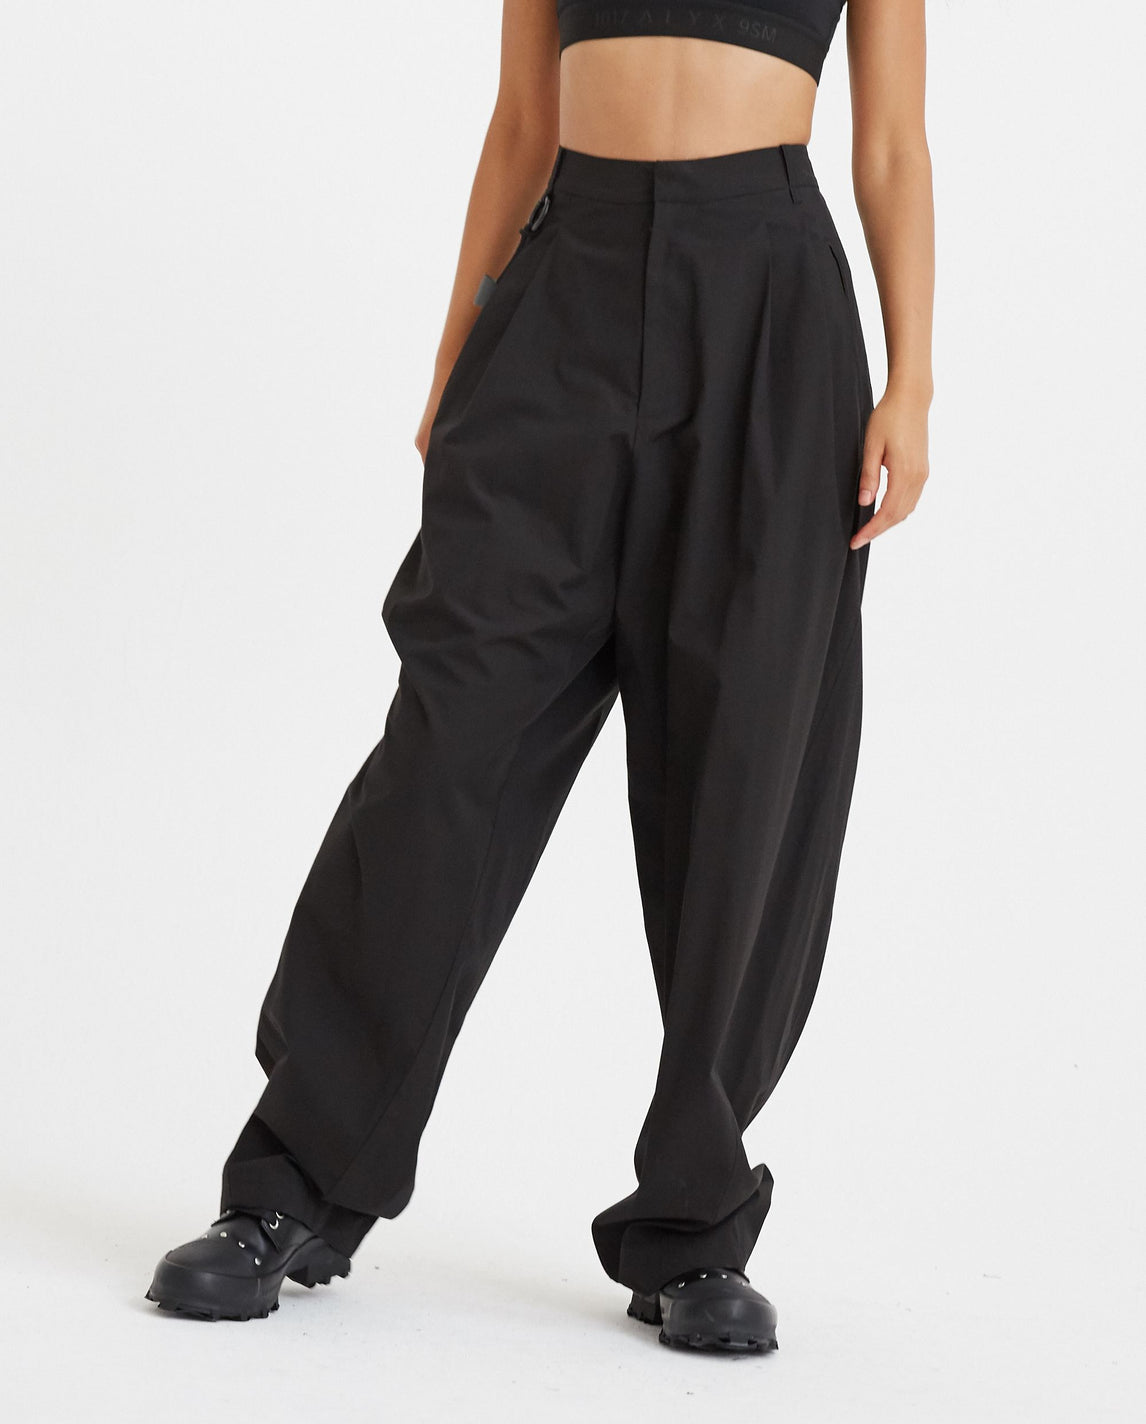 Chained Wide Pants - Black WOMENS HYEIN SEO